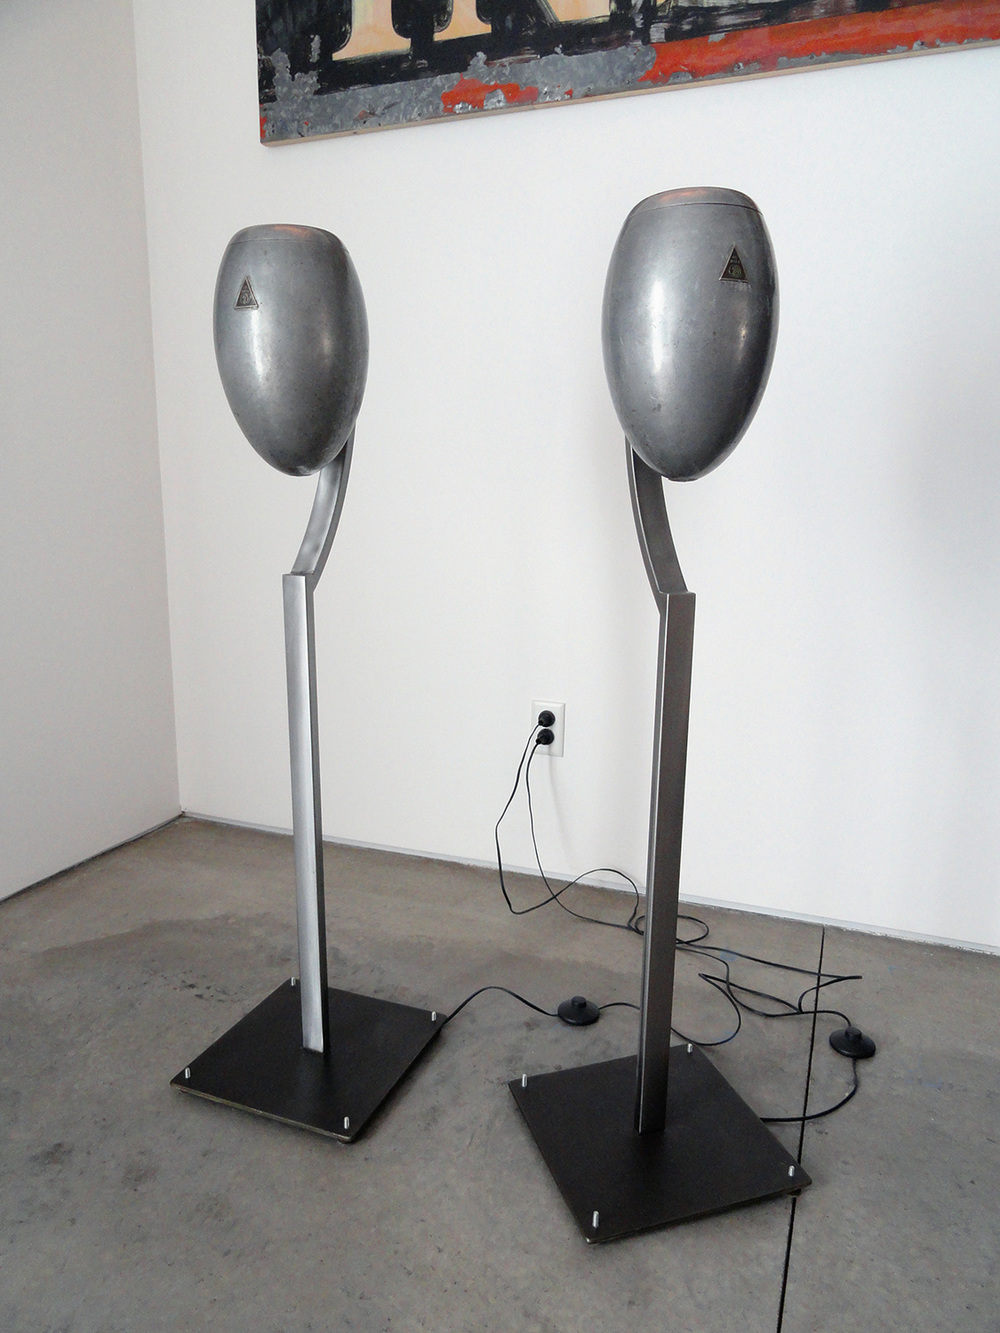 Floor lamps, made from salvaged 1920's automotive head light housings and custom steel bases.